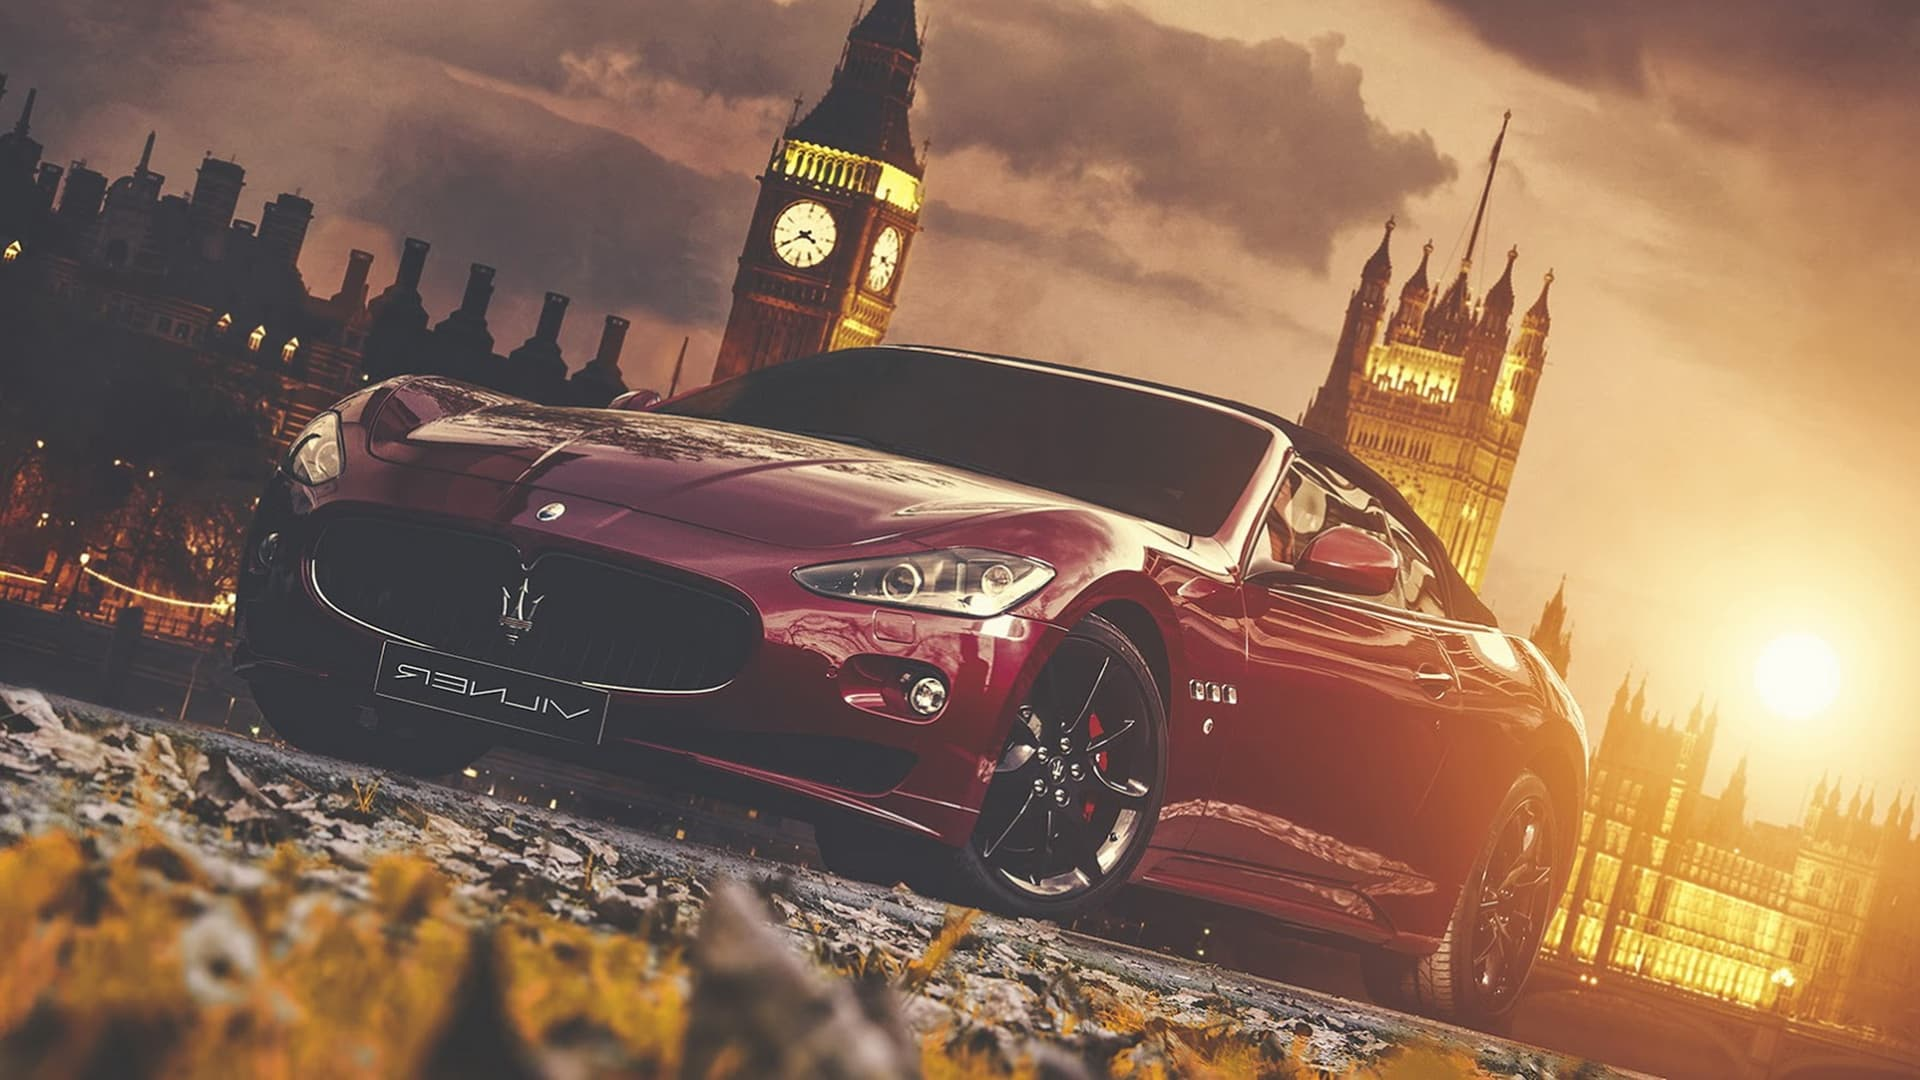 30 maserati granturismo wallpapers high resolution download